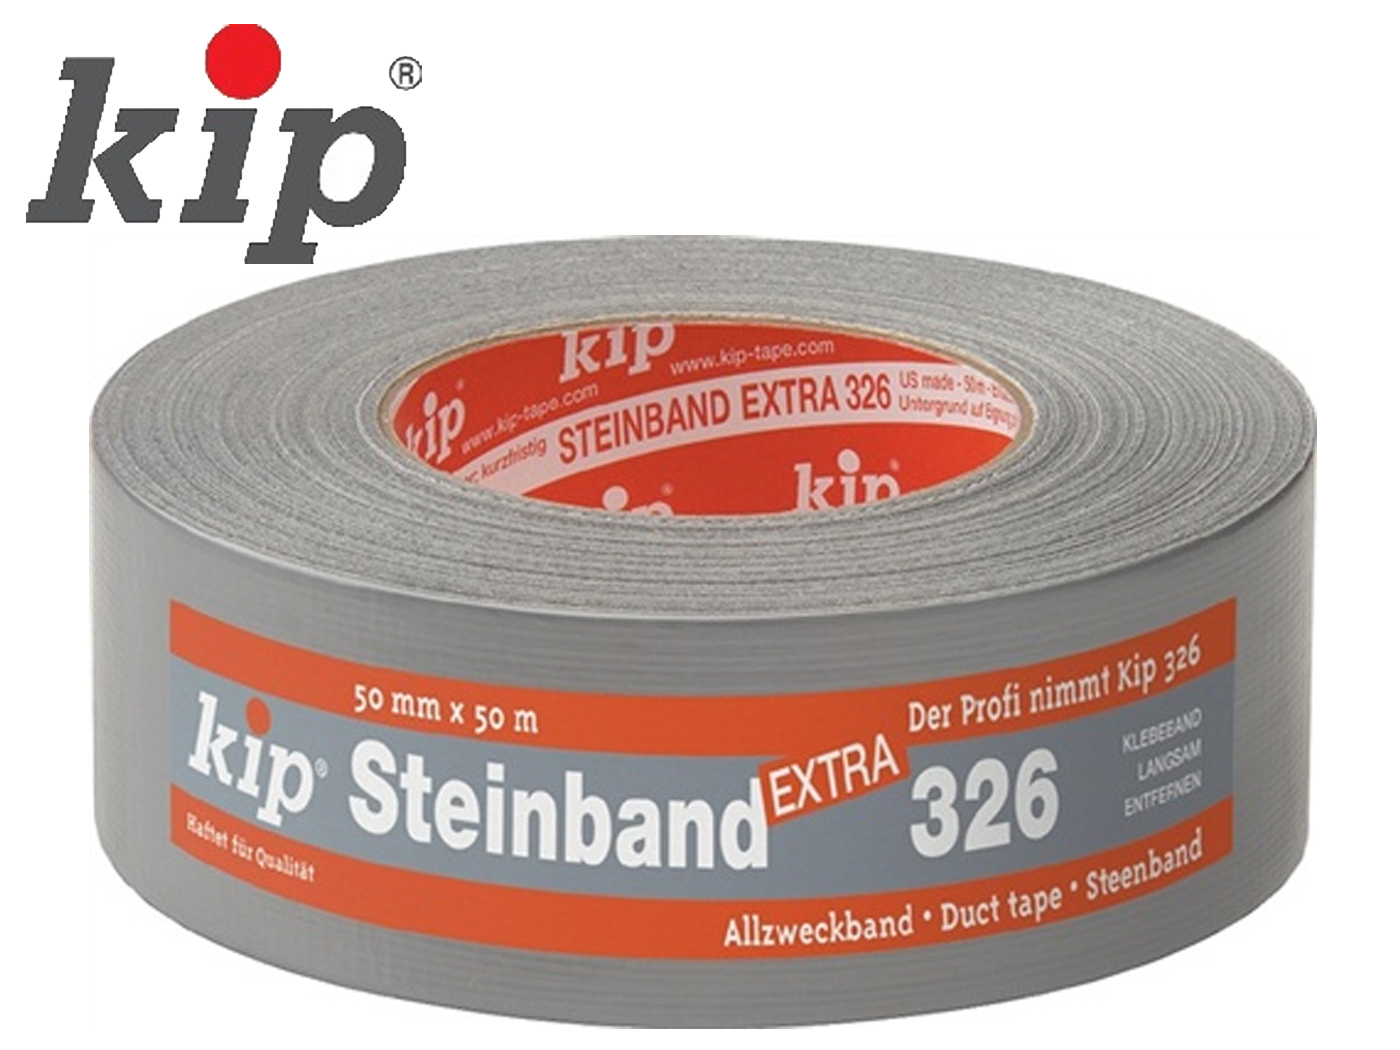 Weefselplakband 50mm breed Kip | DKMTools - DKM Tools